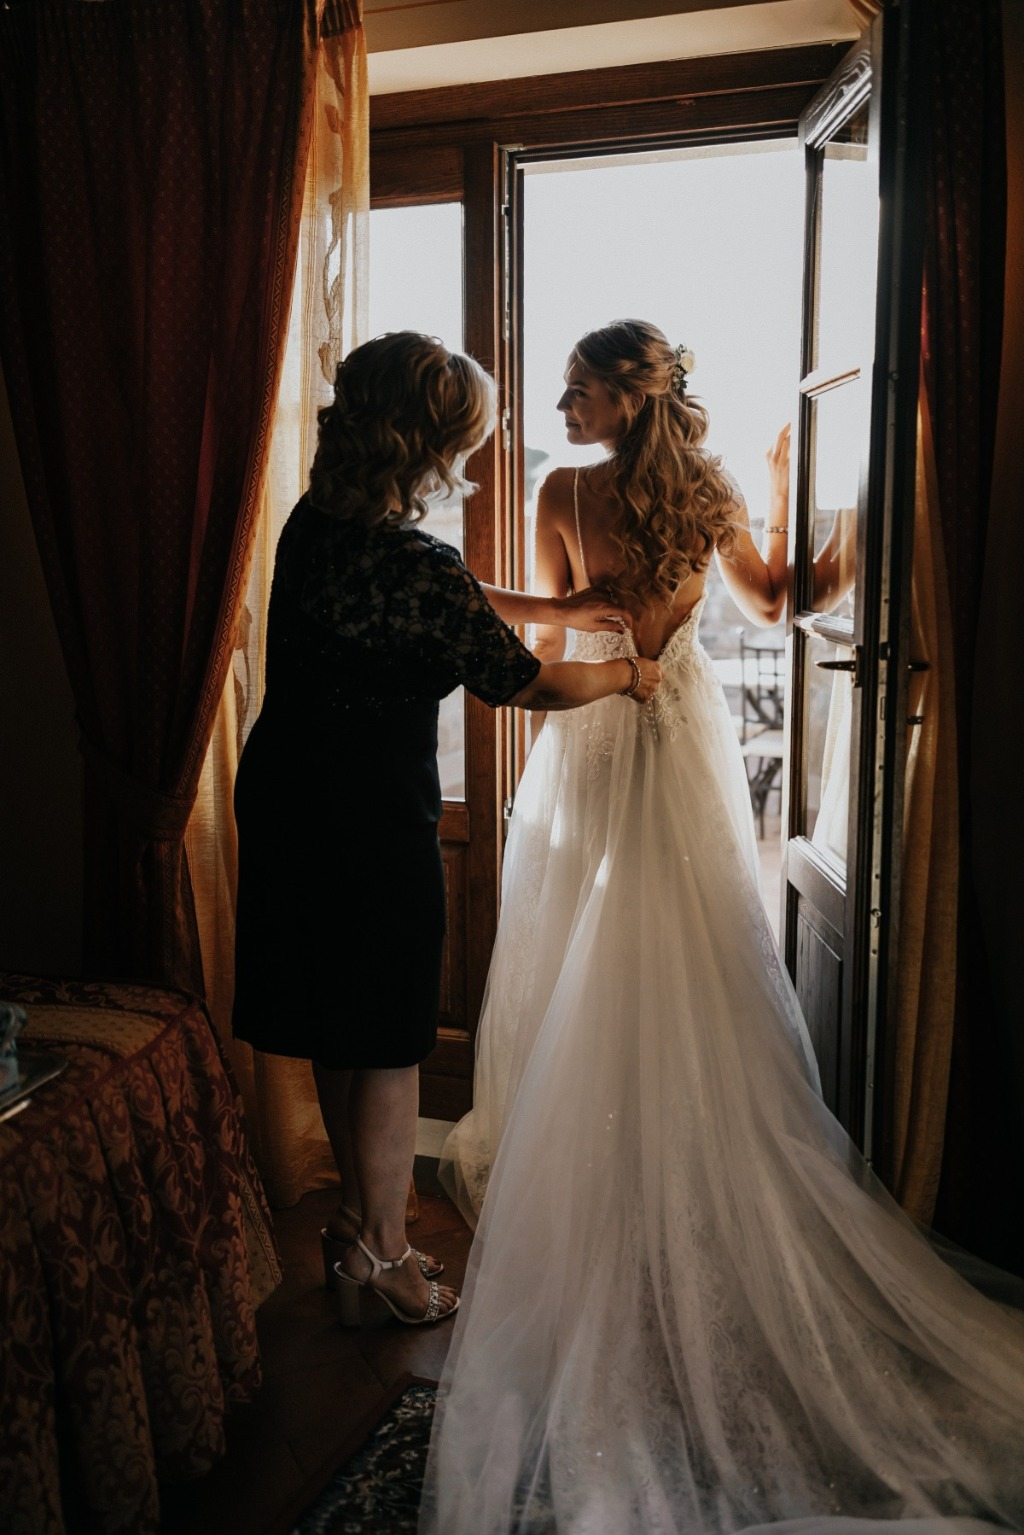 Such a special moment between bride and her mother!